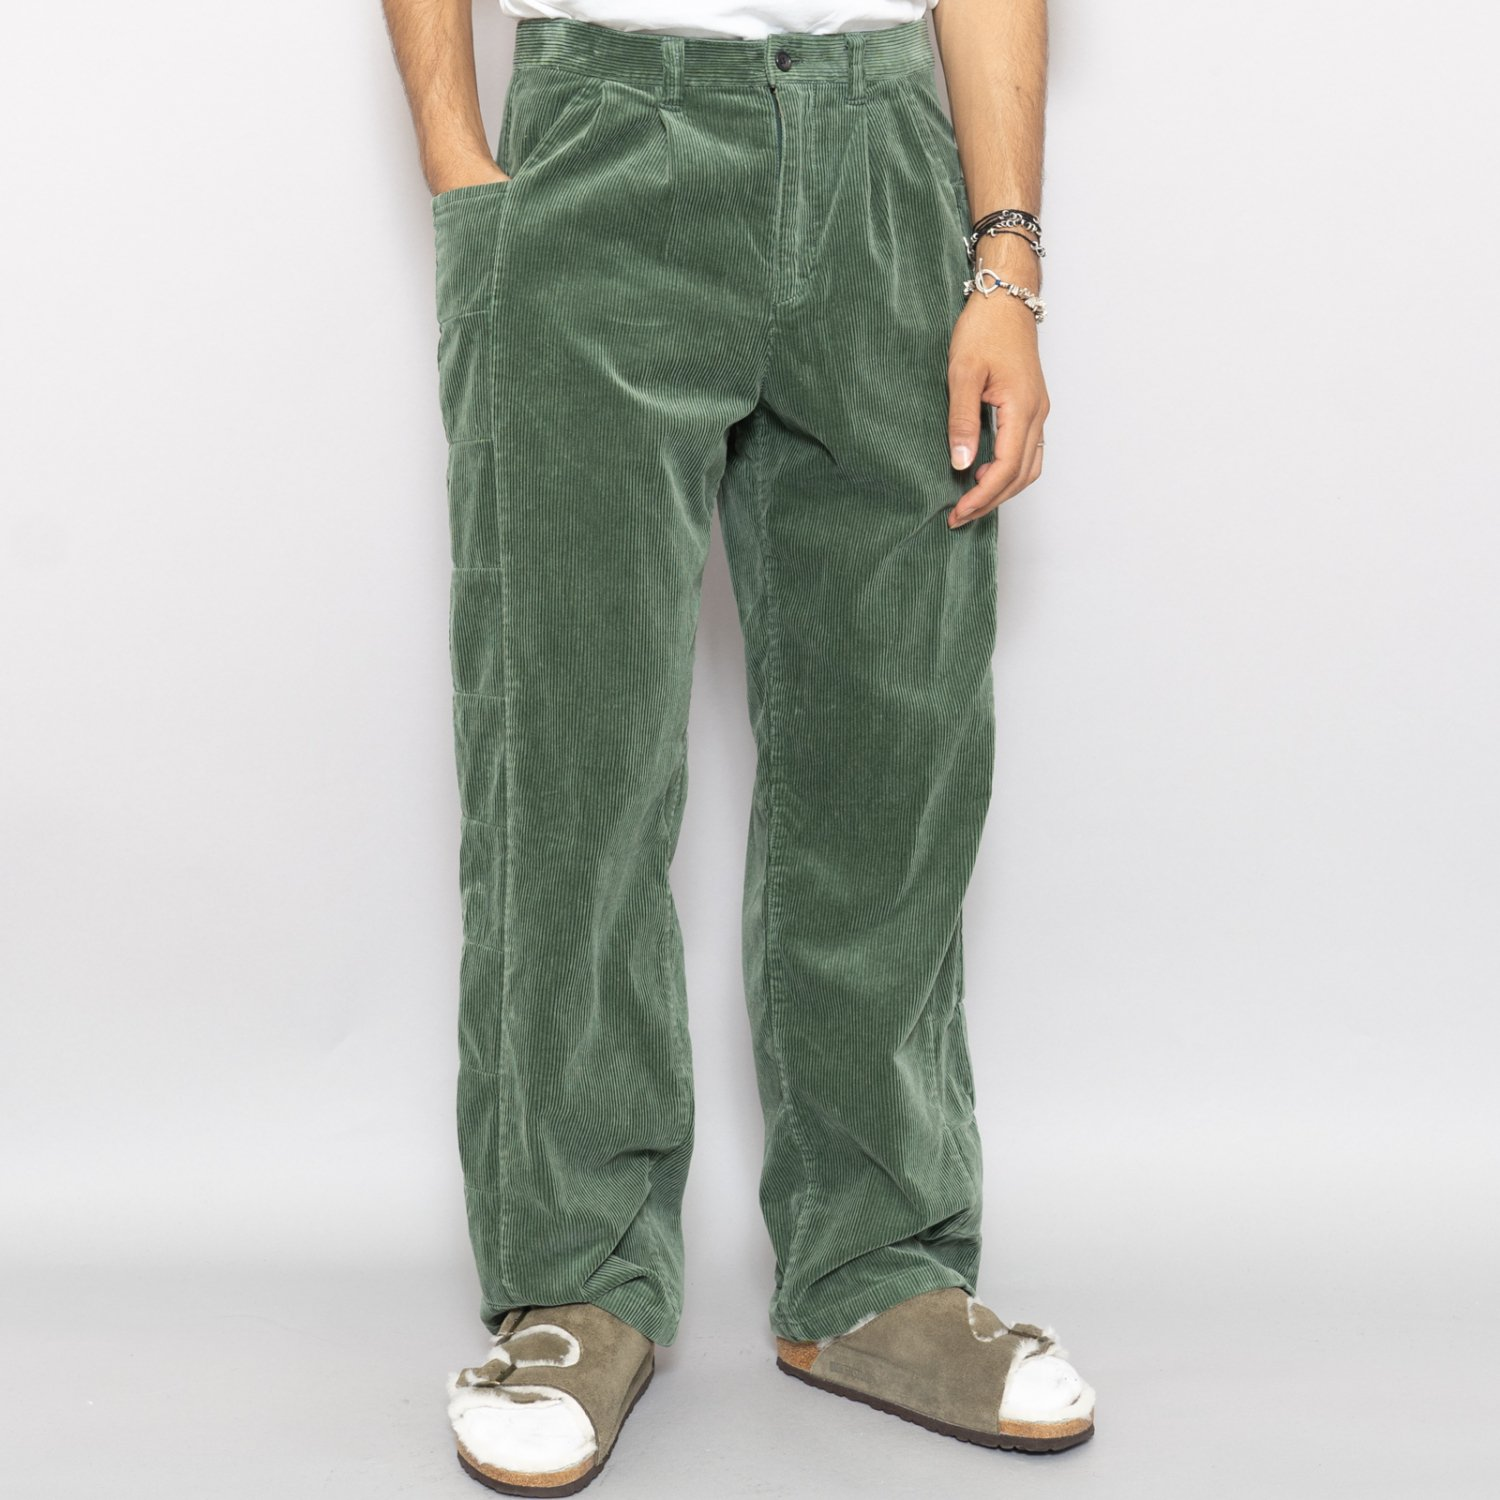 UNUSED * UW0915 Corduroy Pants * Green